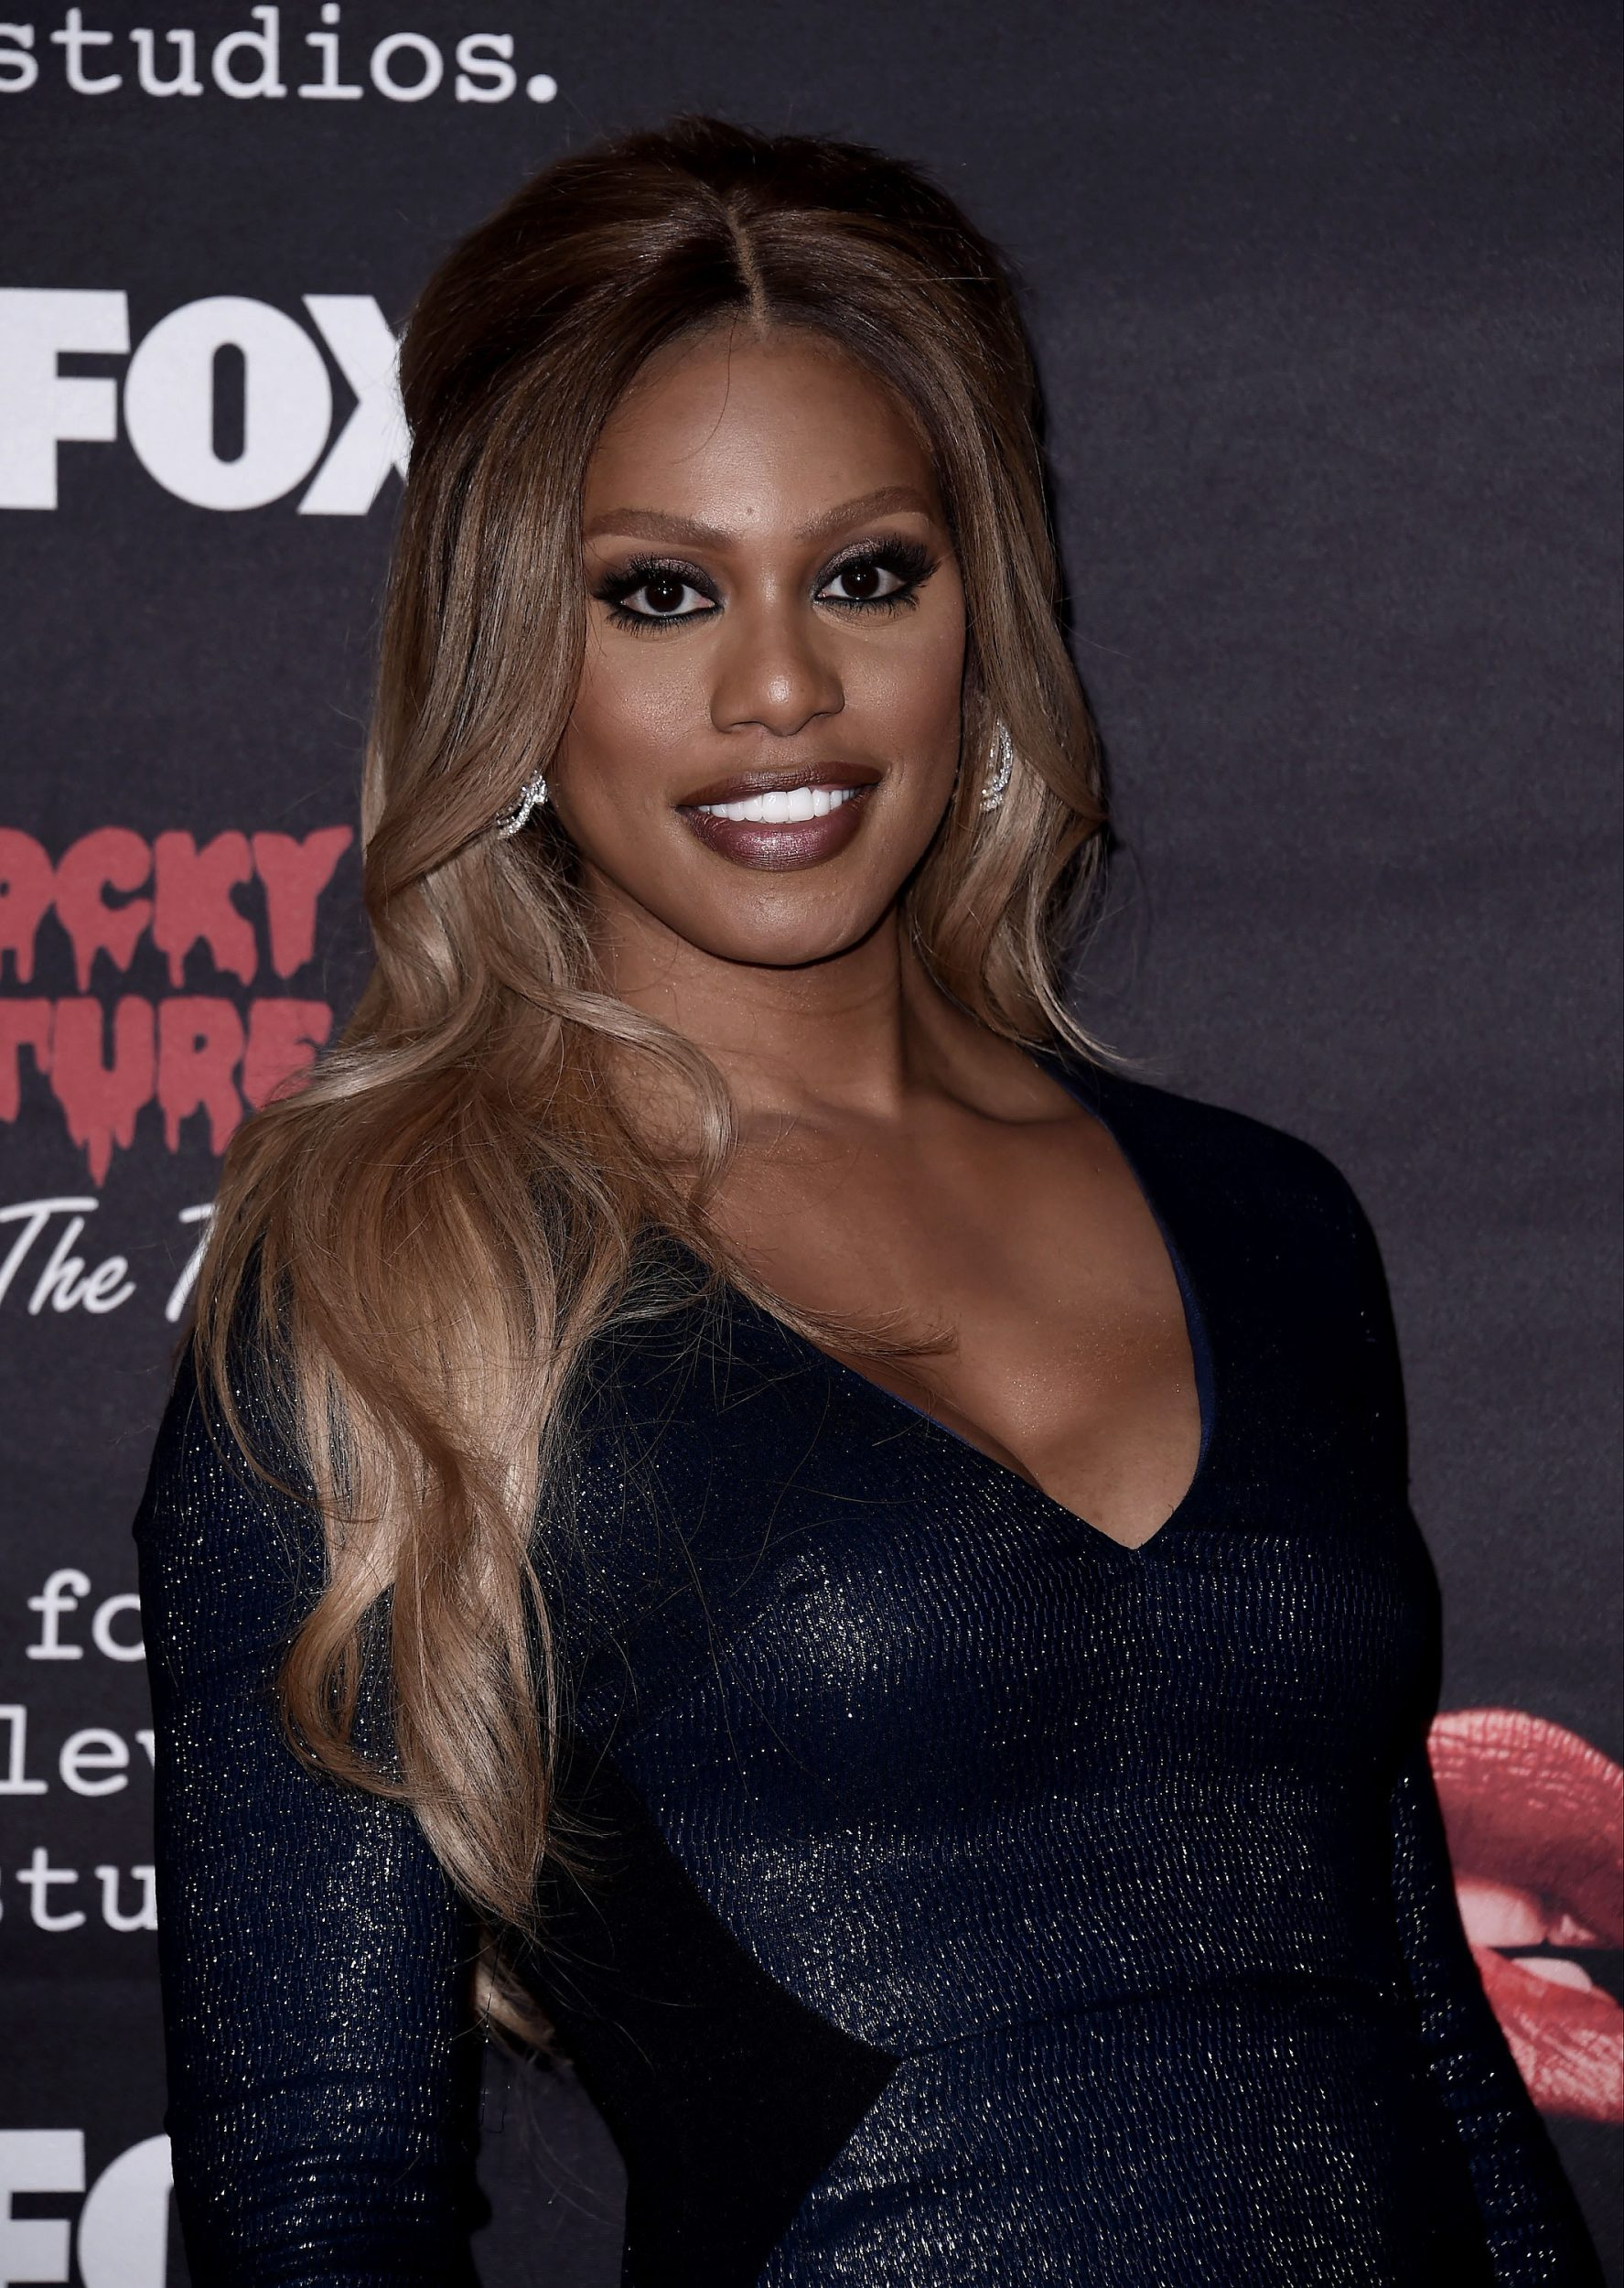 THE ROCKY HORROR PICTURE SHOW: Let's Do The Time Warp Again (and Transylvanians!): Cast member Laverne Cox arrives at THE ROCKY HORROR PICTURE SHOW: Let's Do The Time Warp Again (and Transylvanians!) premiere party red carpet at The Roxy on Thursday, Oct. 13, in Los Angeles, CA. THE ROCKY HORROR PICTURE SHOW: Let's Do The Time Warp Again (And Transylvanians!) premieres Thursday, Oct. 20 (8:00-10:00 PM ET/PT) on FOX. © 2016 FOX BROADCASTING CR: Scott Kirkland/FOX